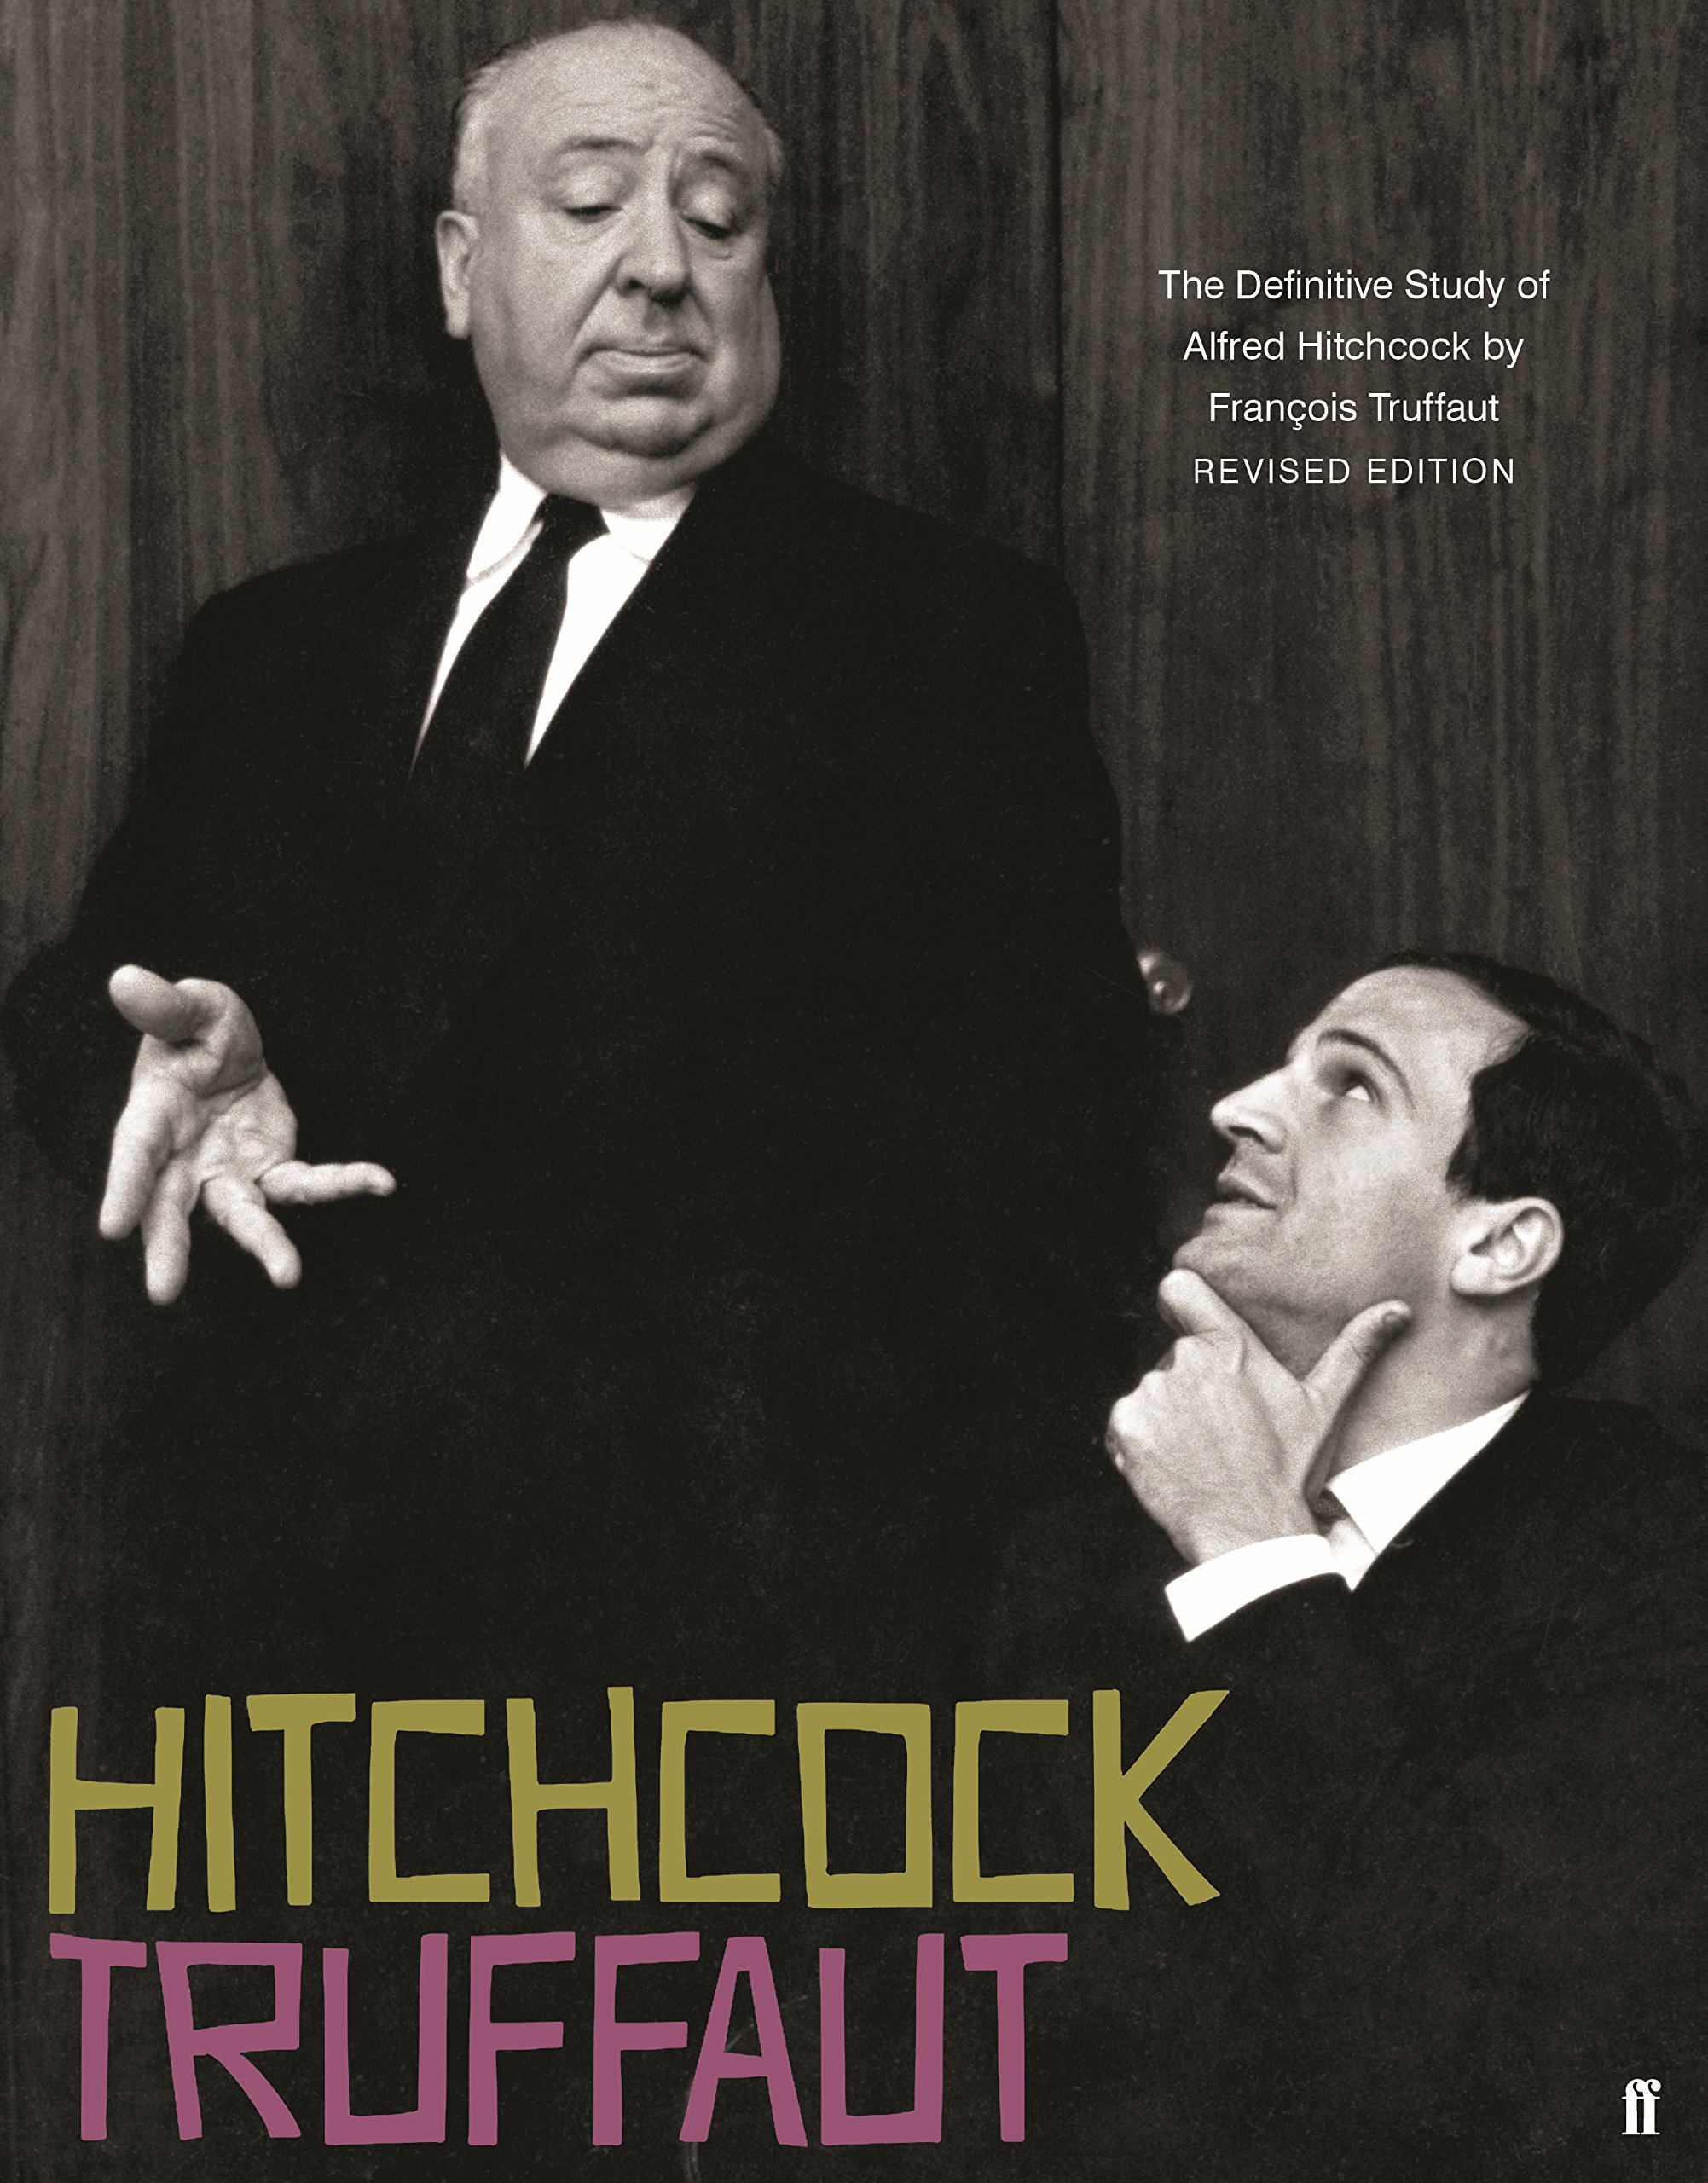 Buy Hitchcock / Truffaut